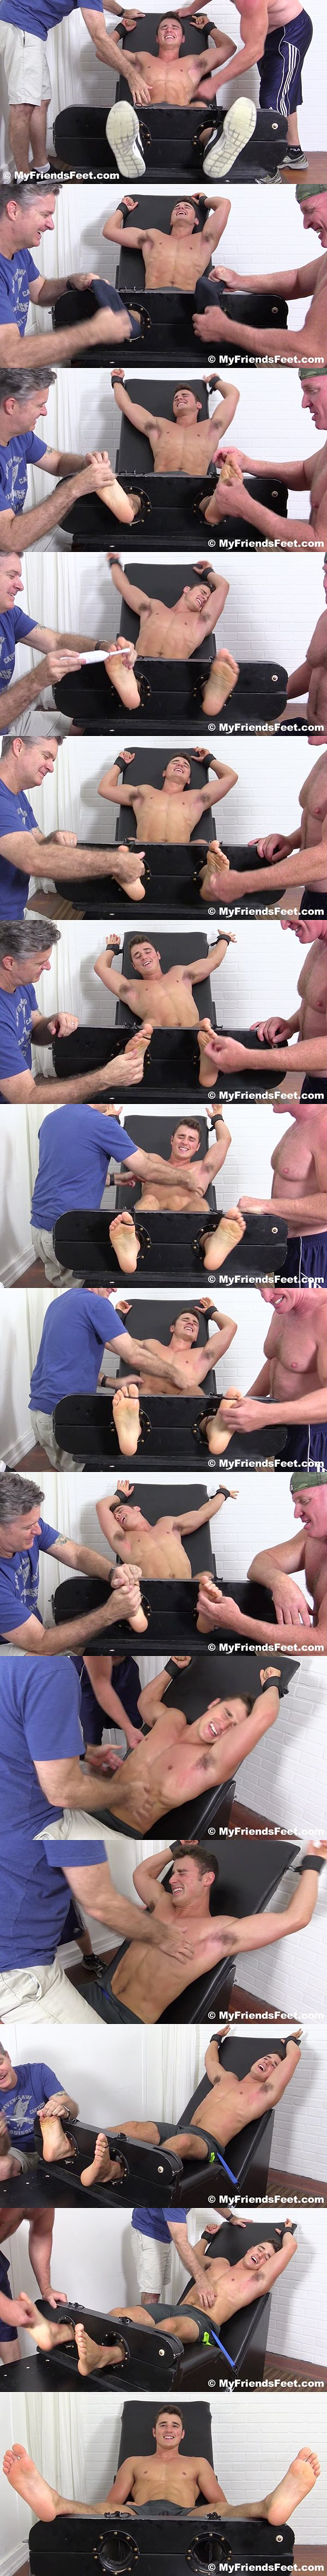 Two foot masters tickle hot college jock Matthew C's ripped body and size 10 feet at Myfriendsfeet 02